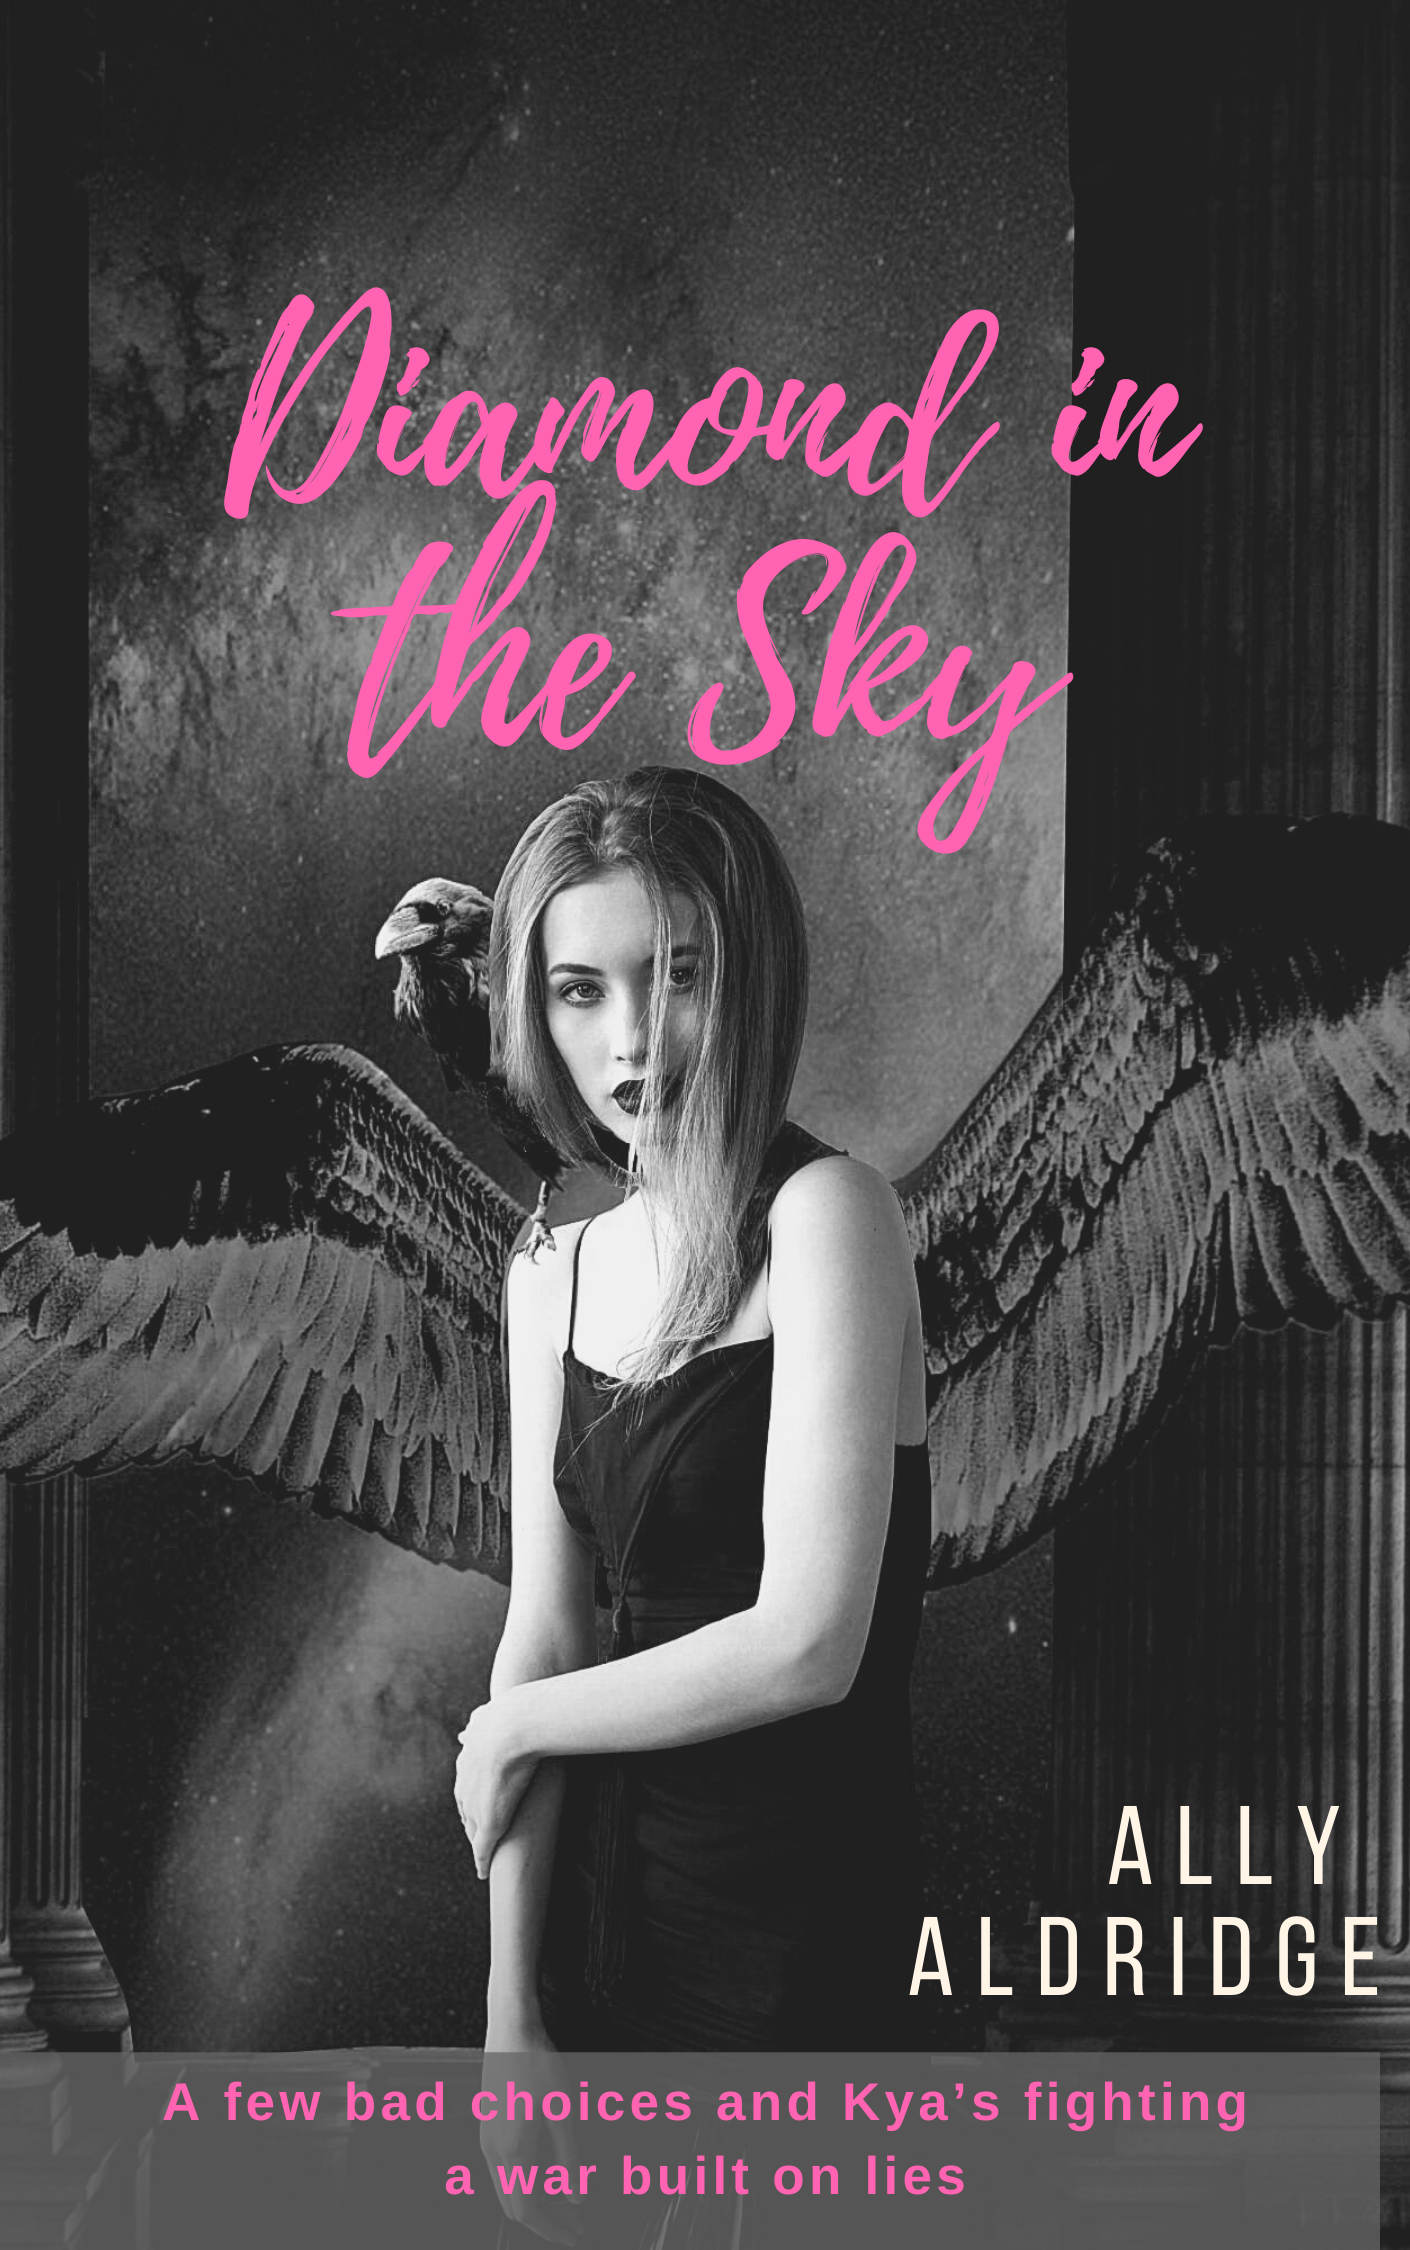 Book cover for Diamond in the Sky by Ally Aldridge.